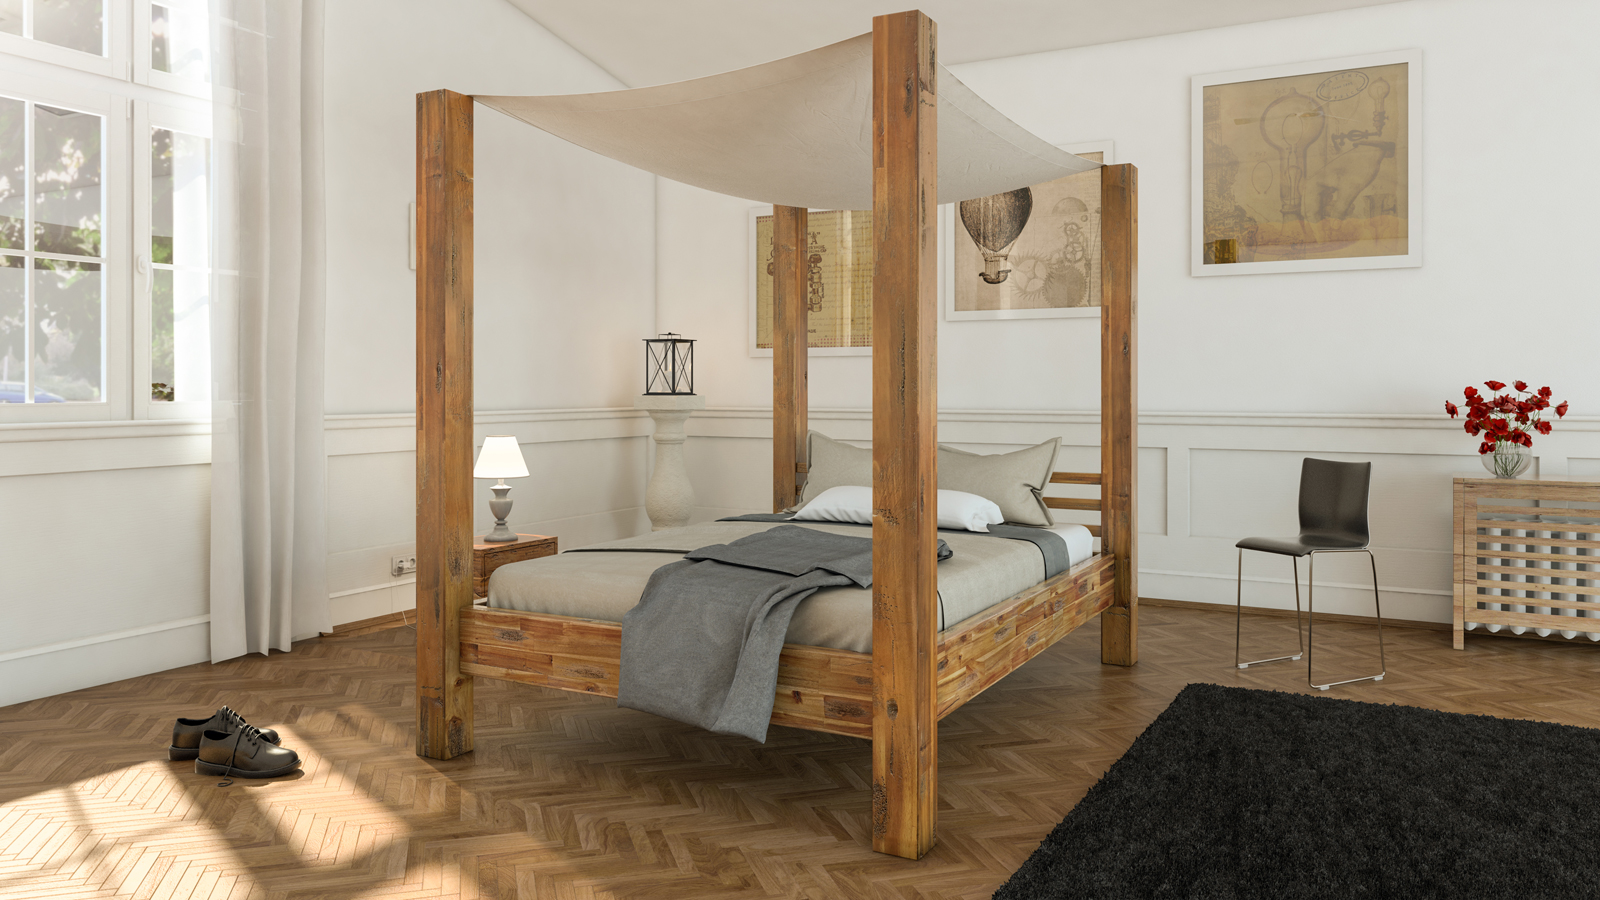 sale himmelbett 140x200 cm massivholzbett inkl himmel akazie bella. Black Bedroom Furniture Sets. Home Design Ideas